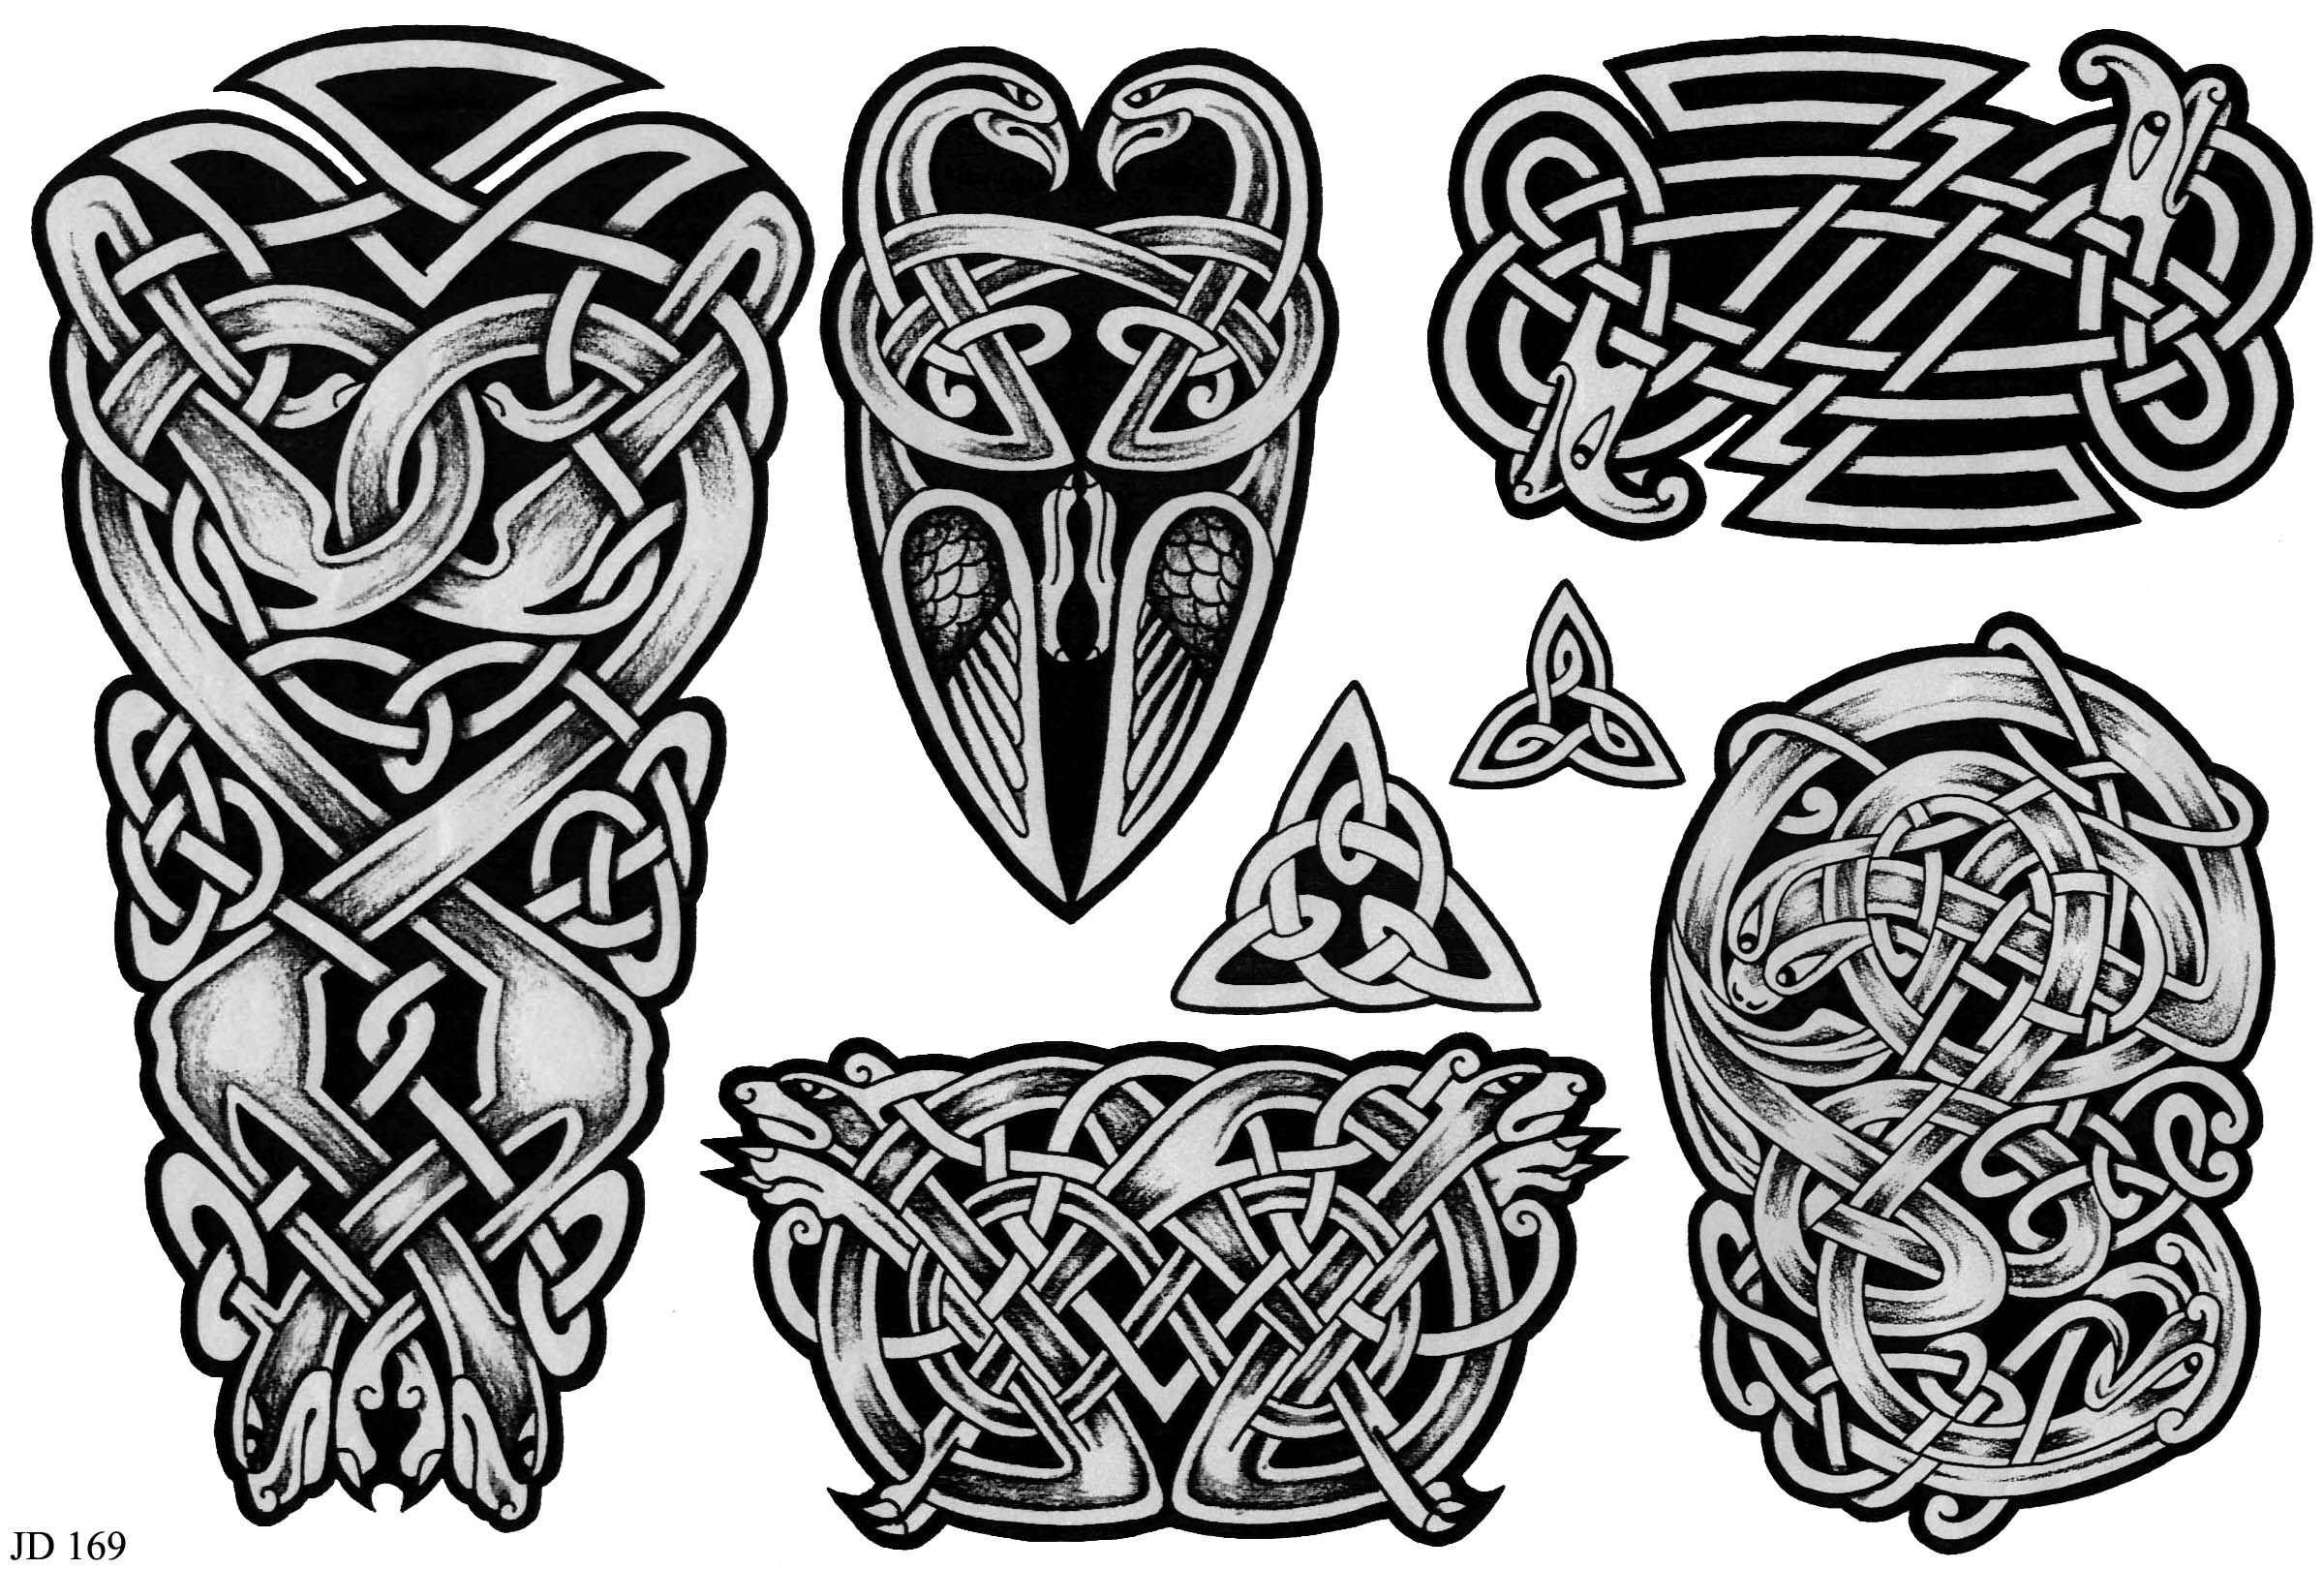 Tattoo Tribal Celtic Designs 988 Jpg 2400 1620 Celtic Knot Tattoo Celtic Tattoos For Men Celtic Tattoo